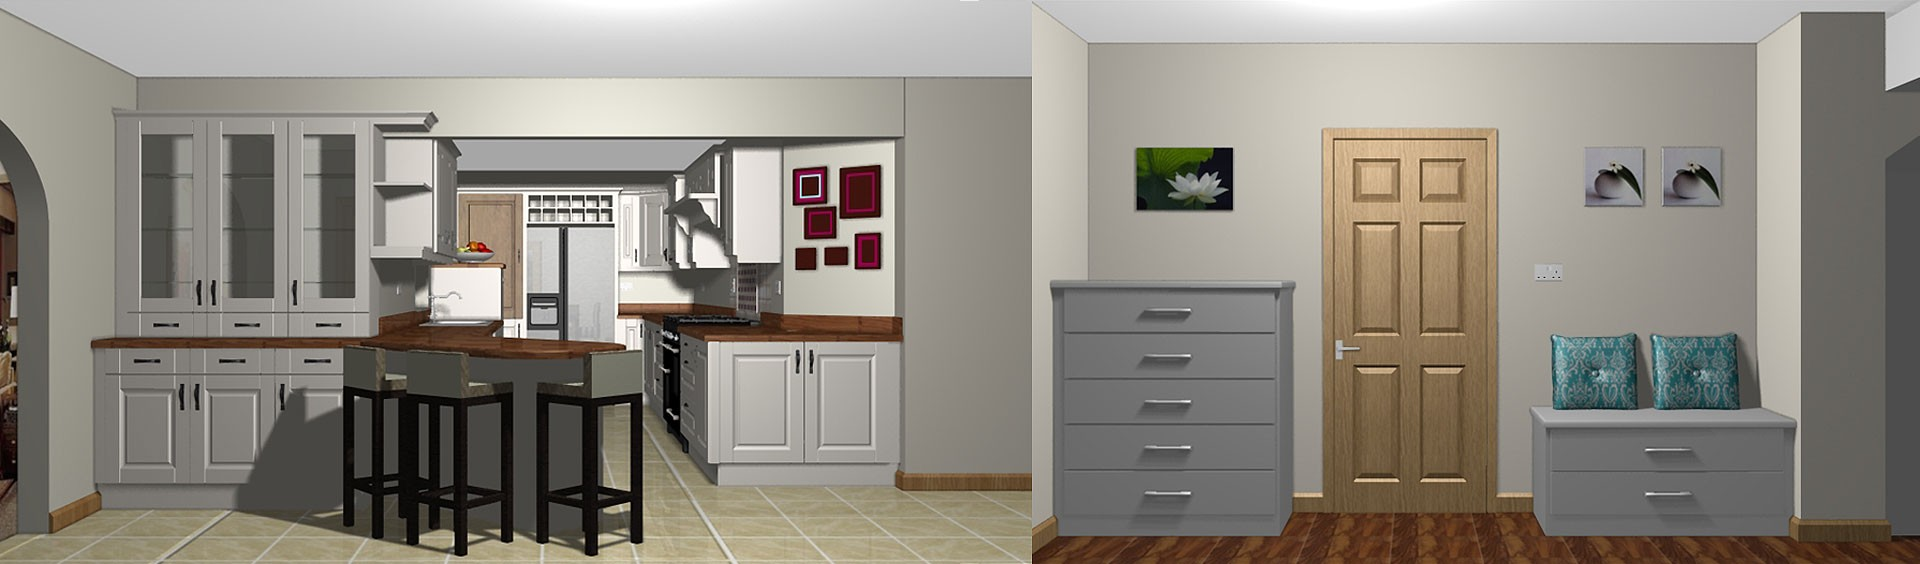 3-D rendering model kitchen living room bedroom